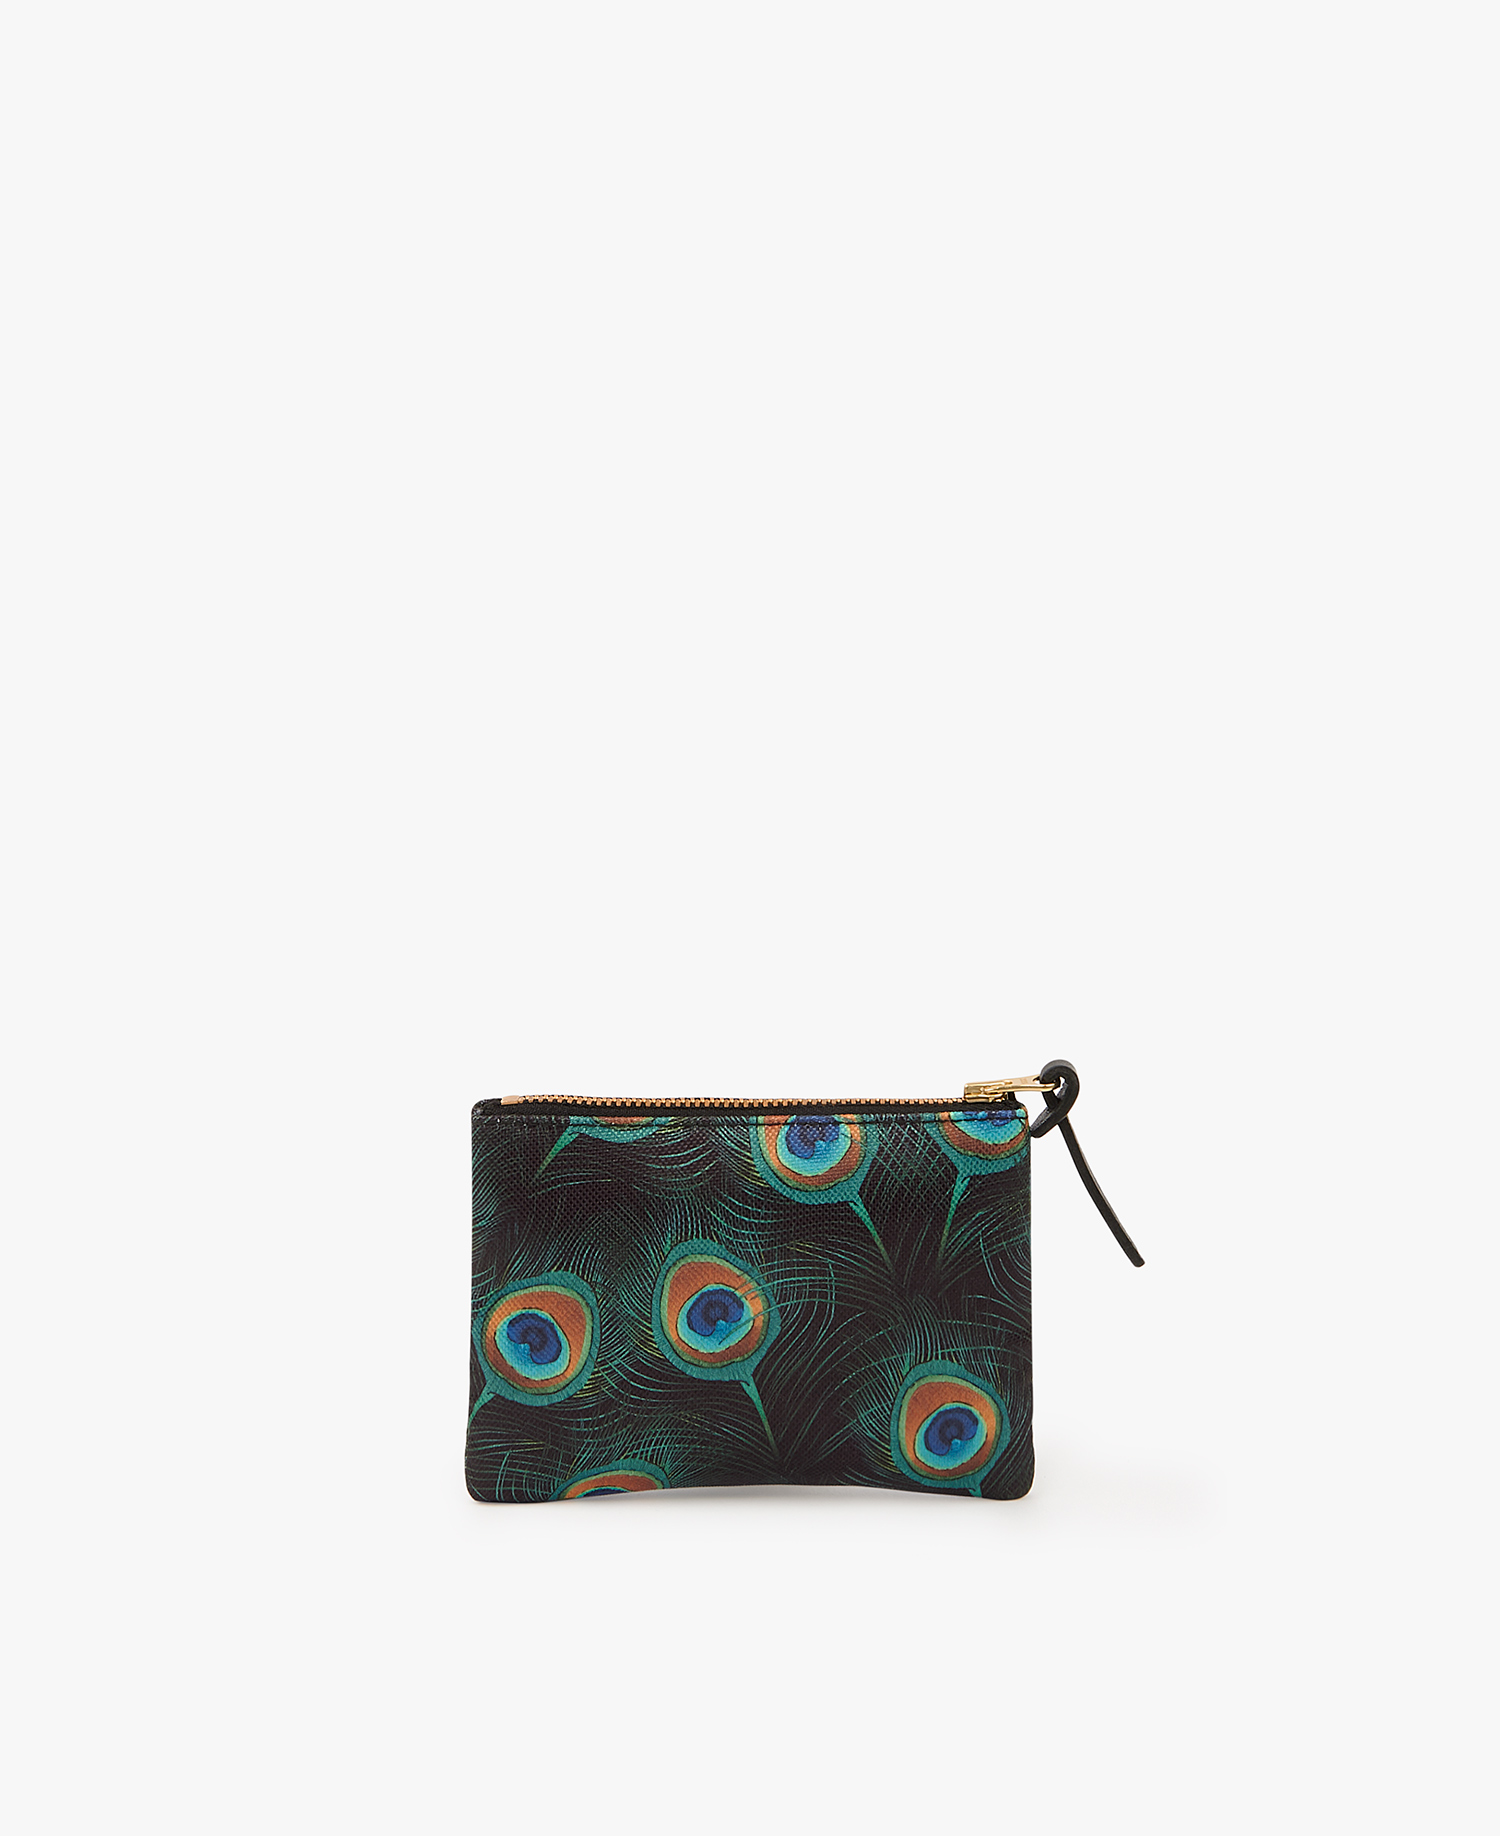 Peacock-Small-Pouch-Bag-Display-1